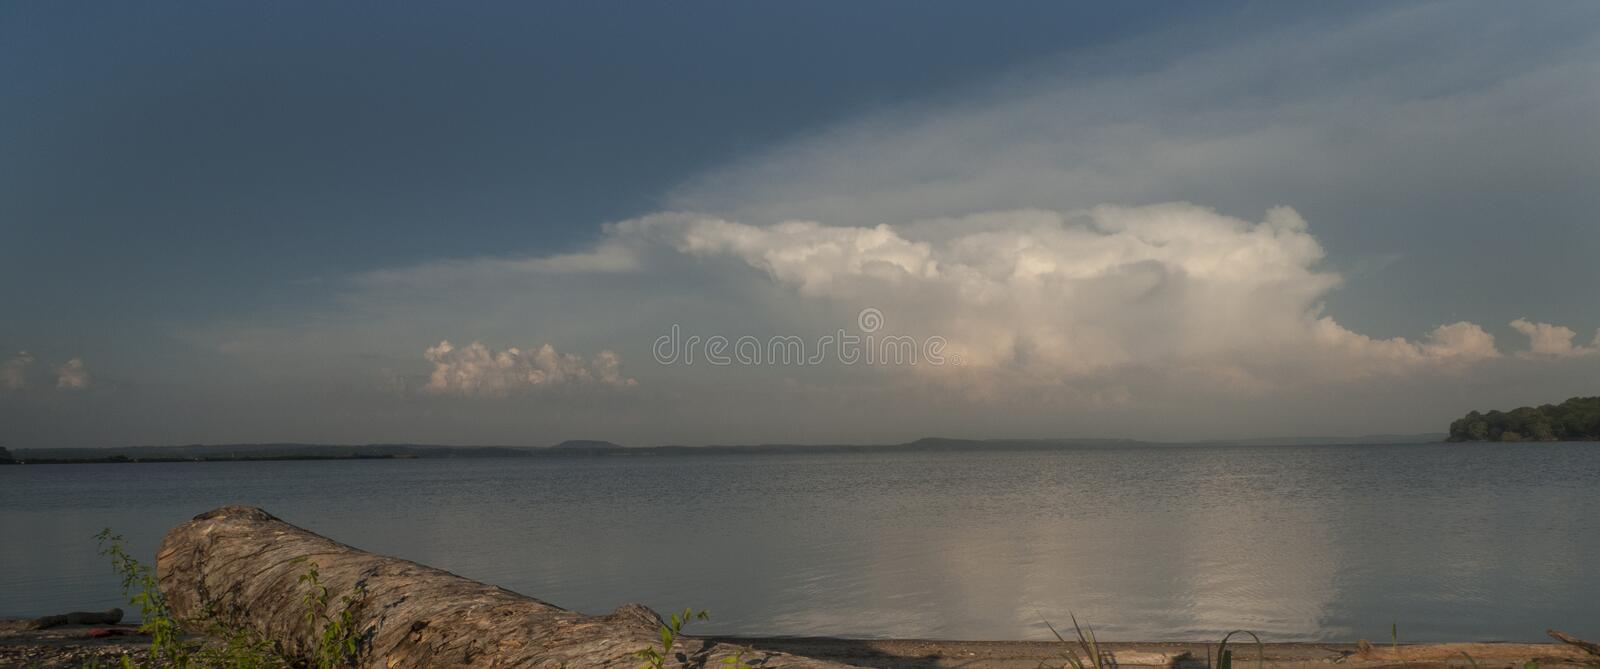 Stormy skies over a lake with driftwood on shore stock photos